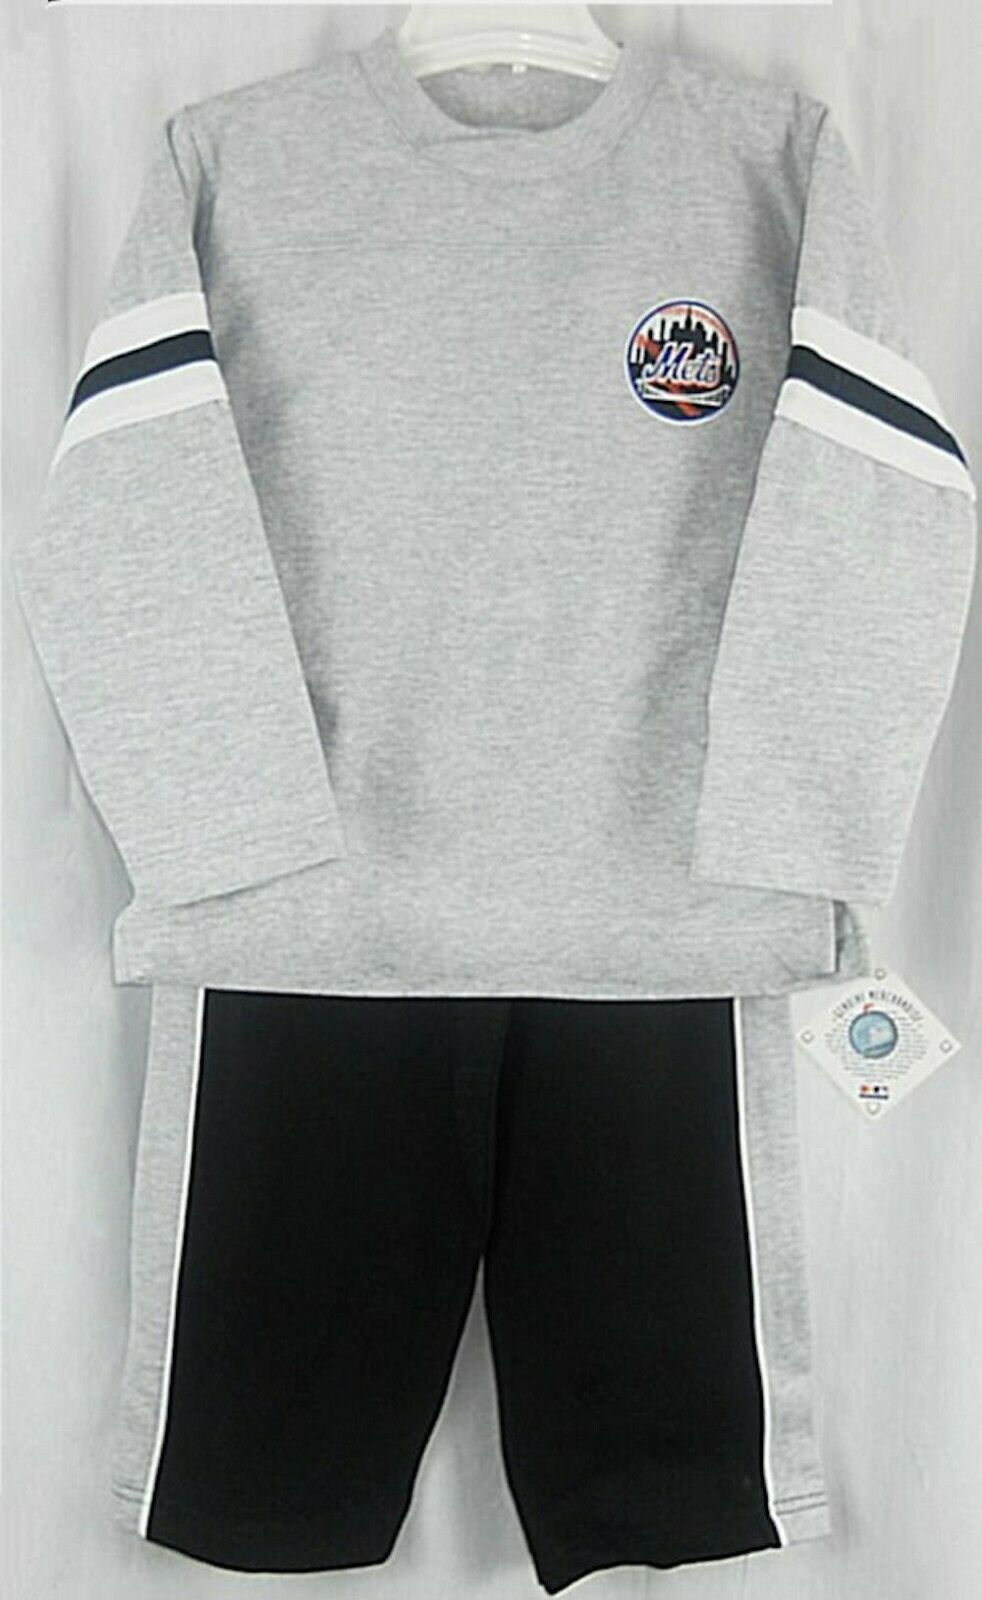 Primary image for New York Mets Child Kids Sweatshirt and Sweatpants 2PC Set SZ 6